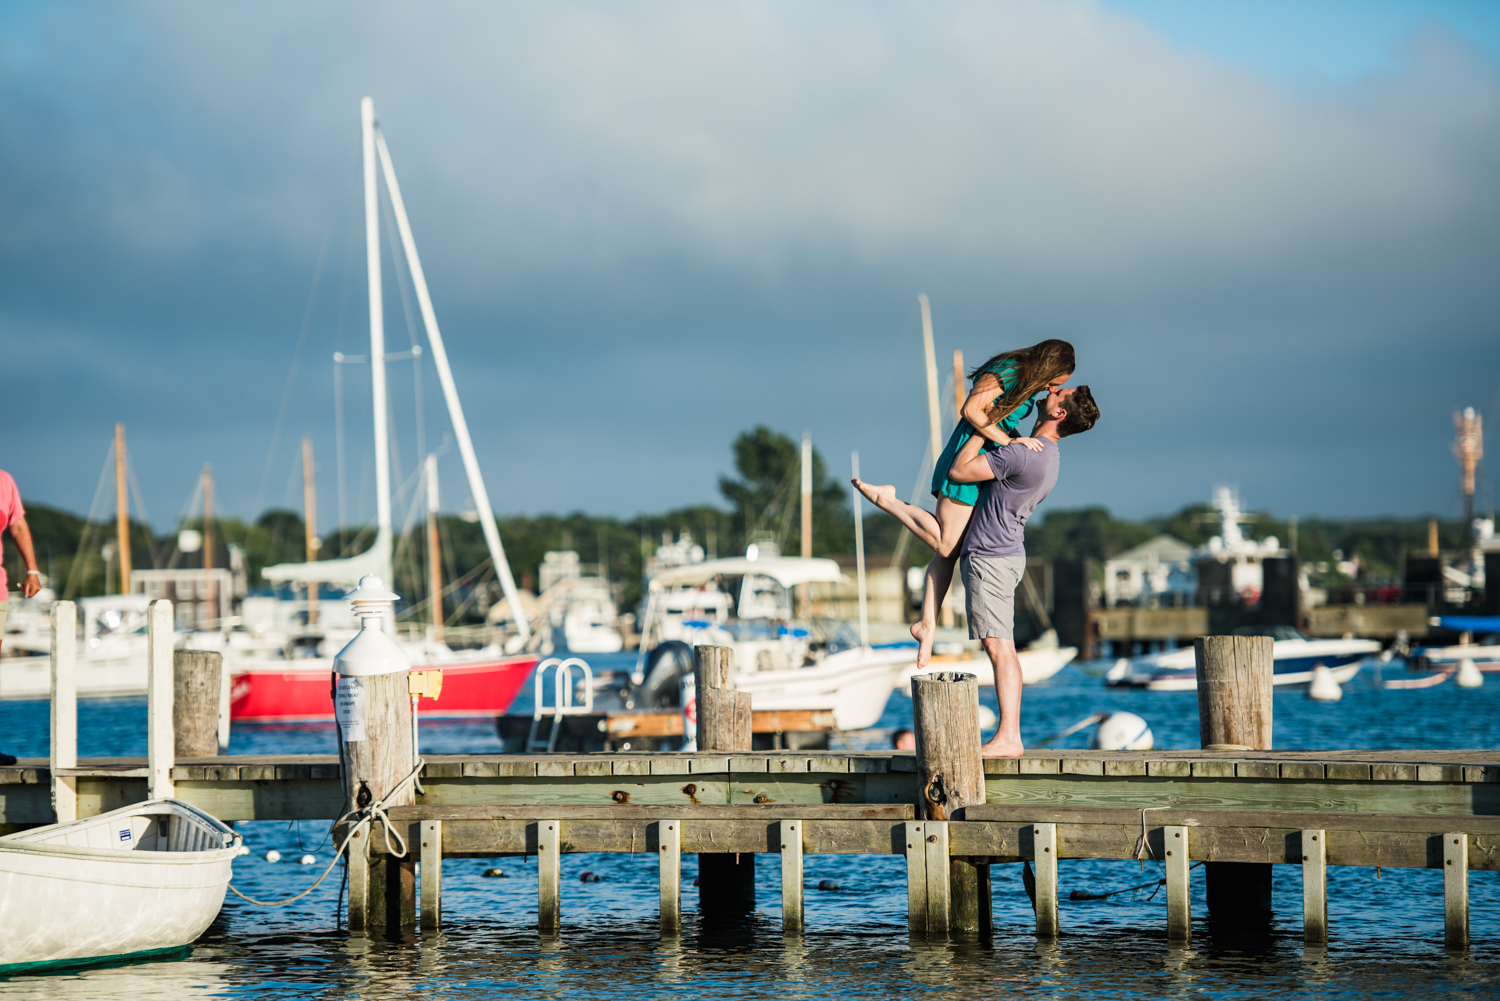 engagement_session_marthas_vineyard_DSC_8913.jpg